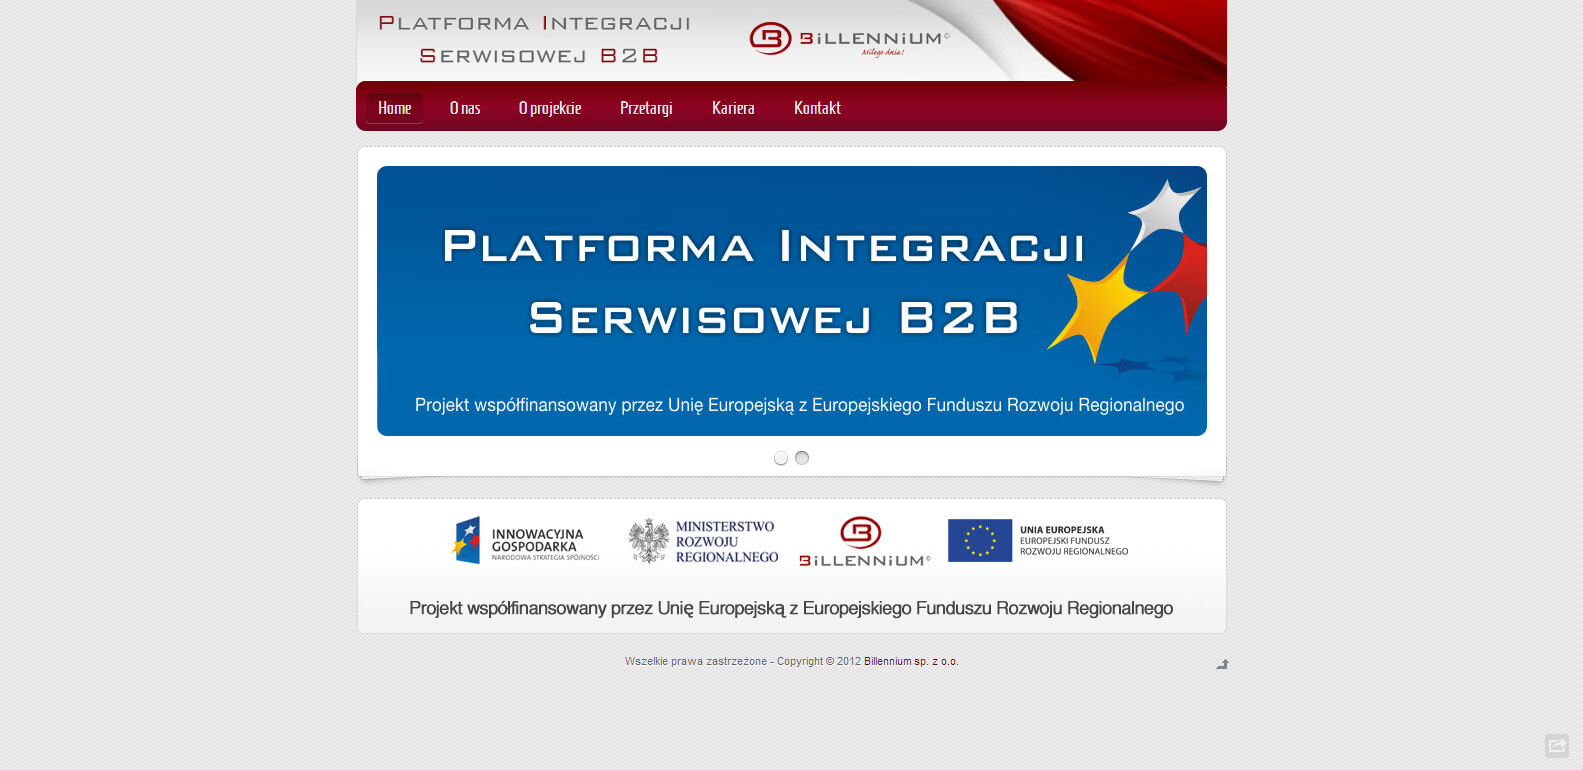 2012-08 Platform of services integration – b2b.billennium.pl